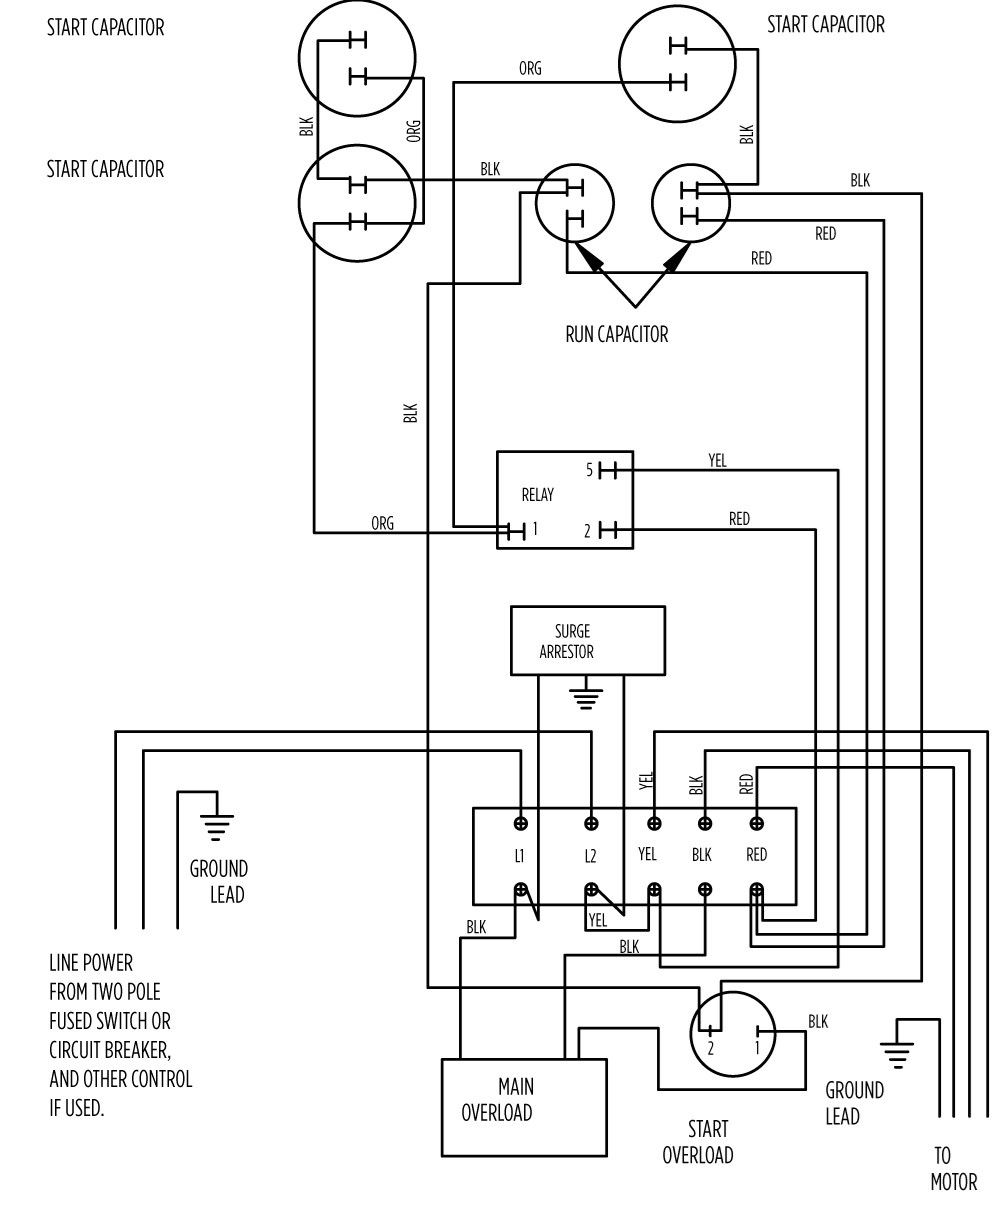 AIM Manual - Page 57 | Single-Phase Motors and Controls | Motor Maintenance  | North America Water | Franklin ElectricFranklin Electric